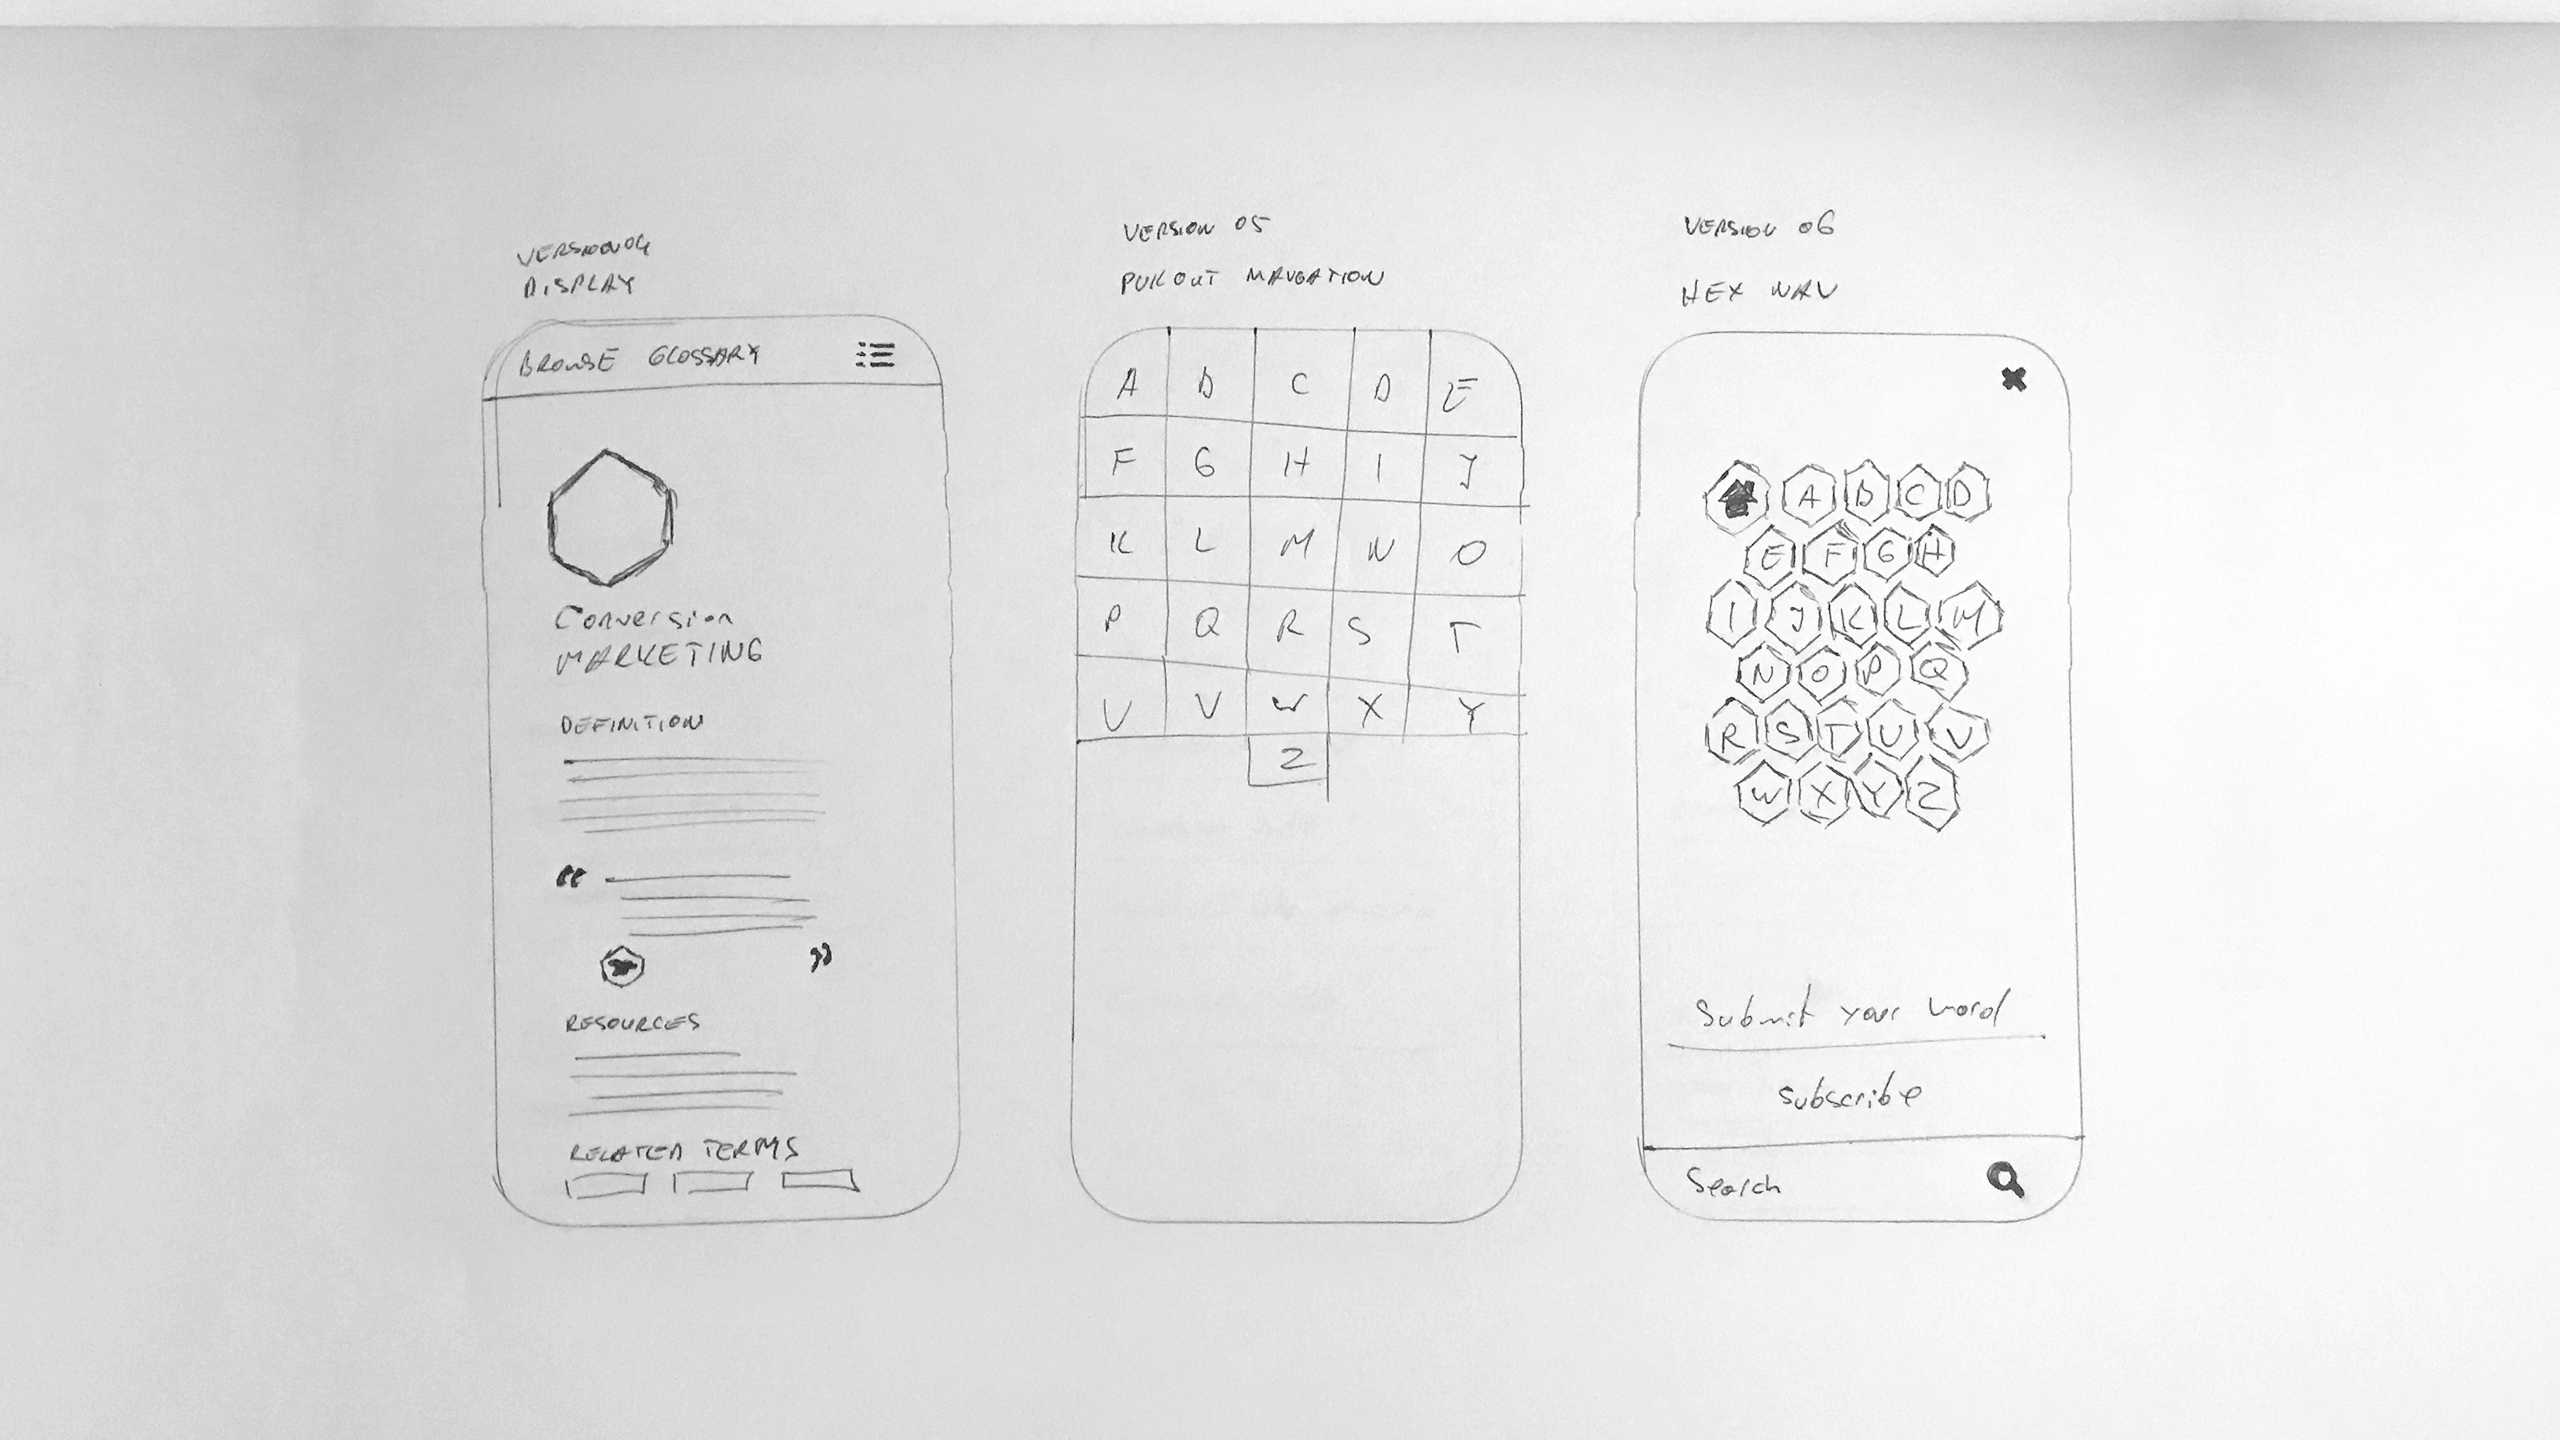 conversion-glossary-wireframe-sketches-03